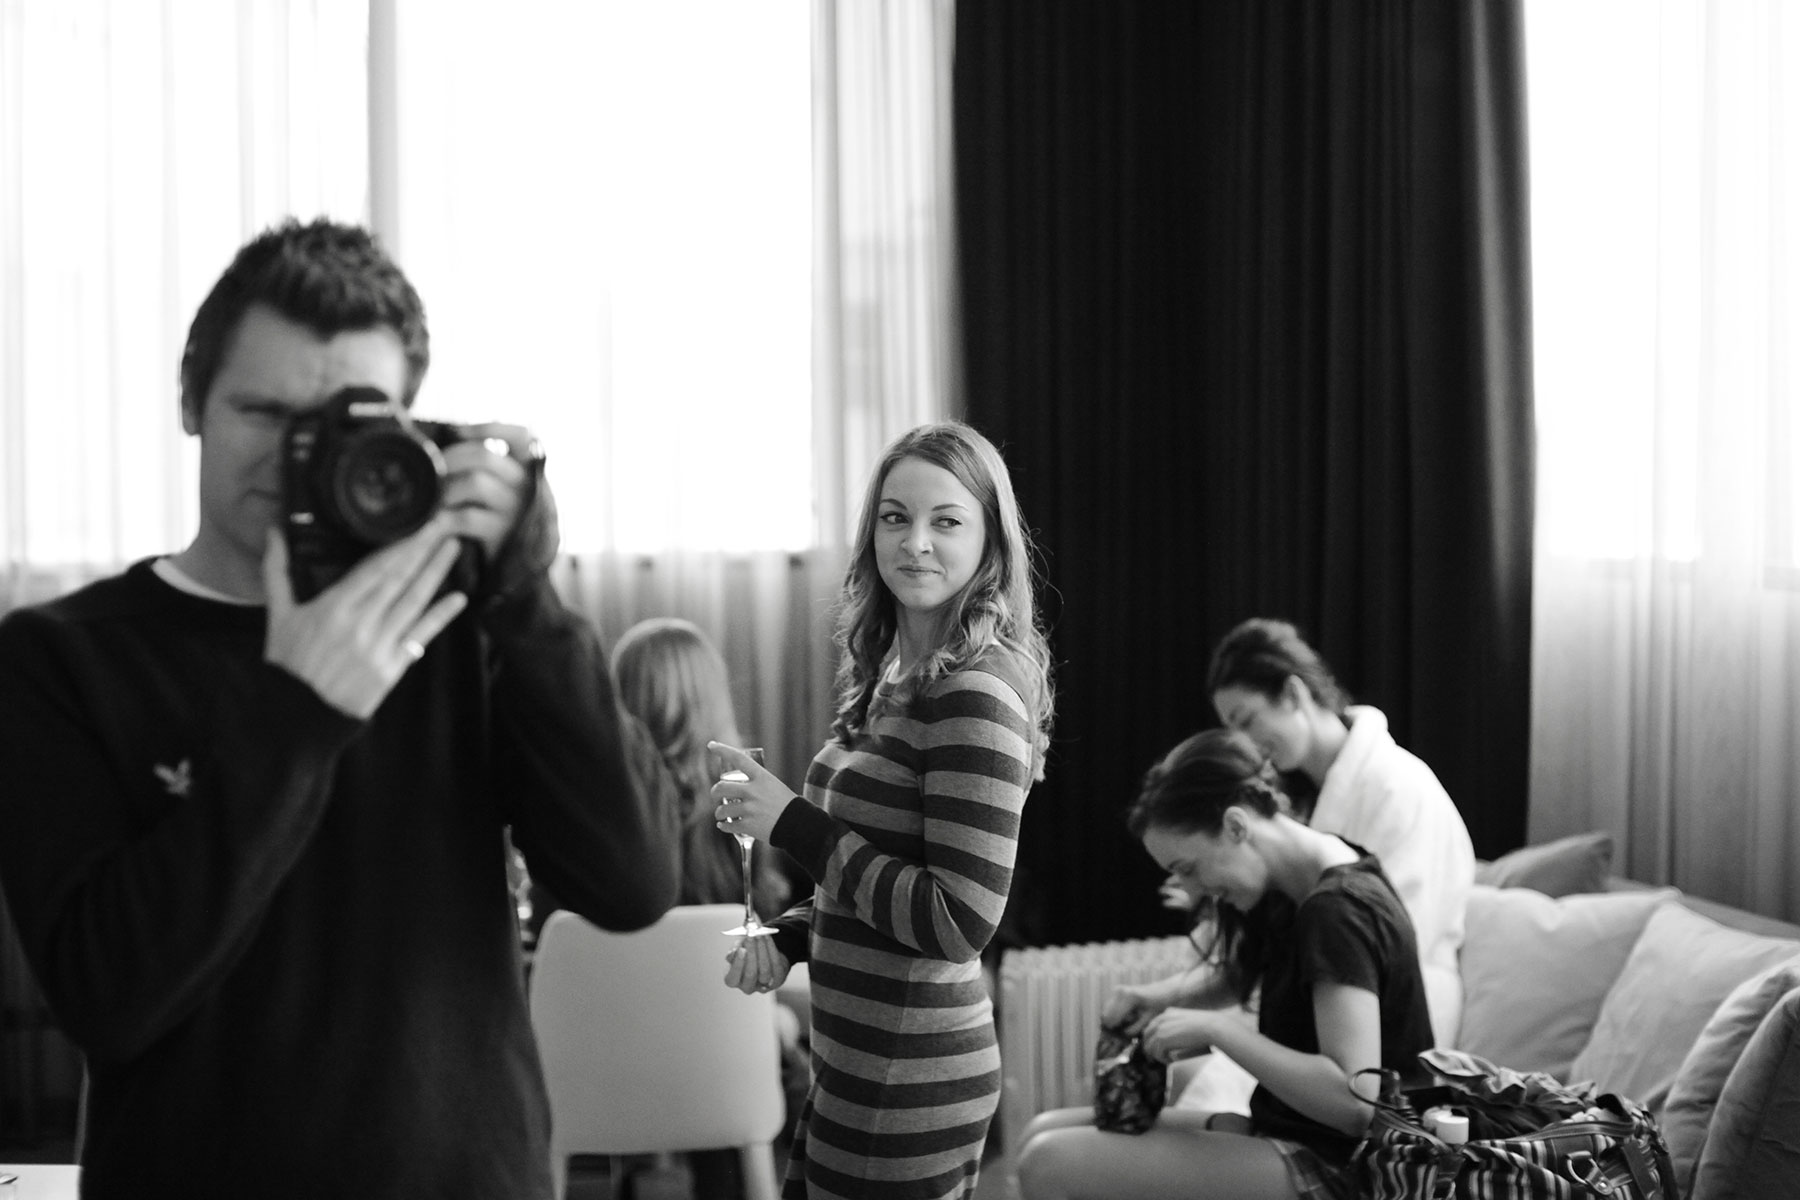 Documenting the big day. Robin Bradshaw - Bullit Photography in Cheltenham & the Cotswolds